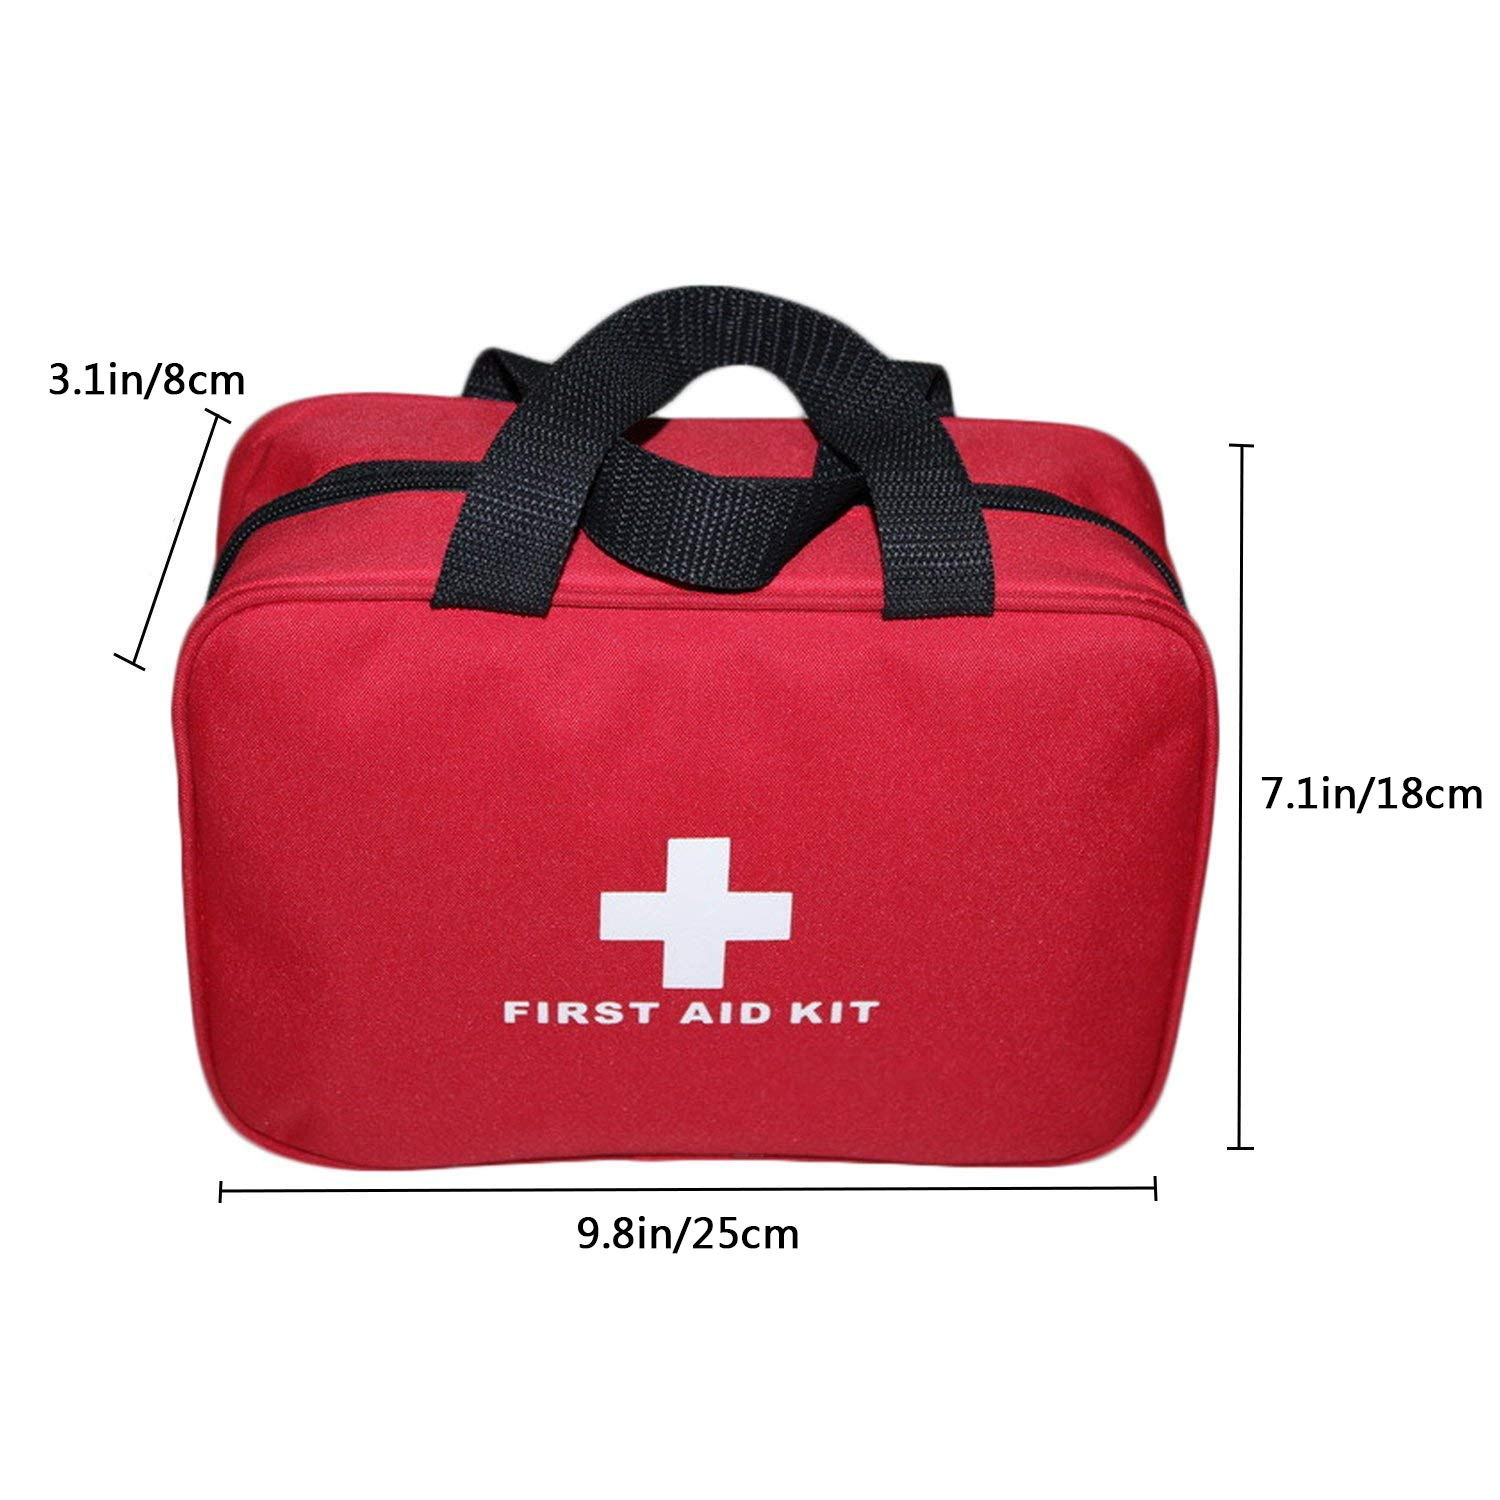 Camping & Hiking Trustful Empty Small 25*18*8cm Professional For Travel And Sports Emergency Survival First Aid Kit Medical Bag Campcookingsupplies